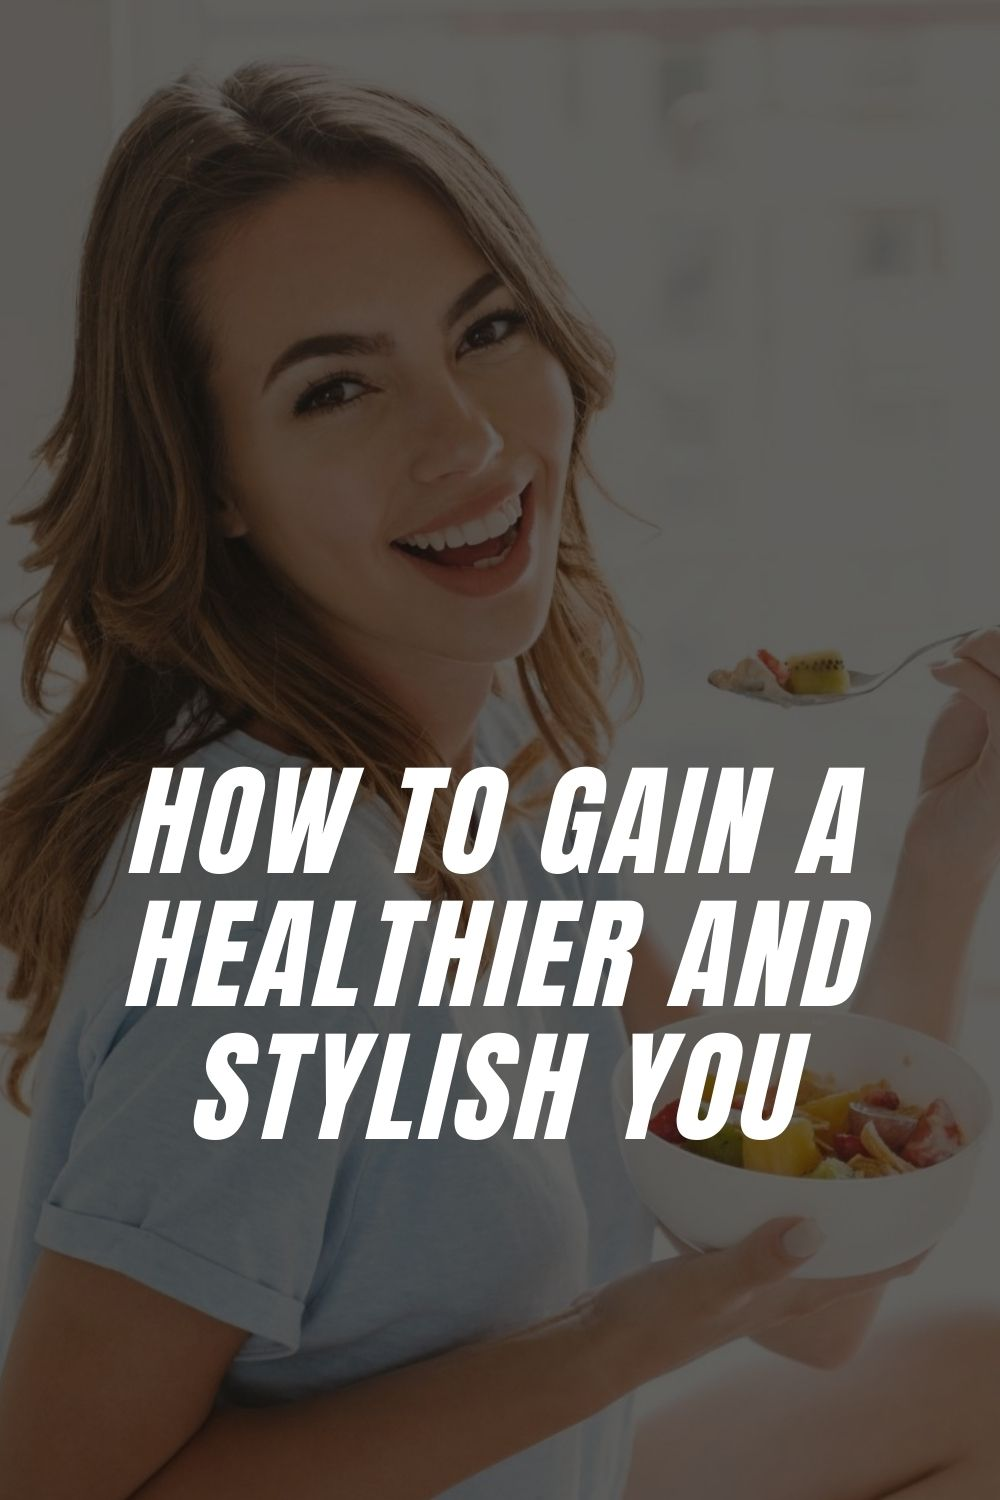 How to Gain a Healthier and Stylish You